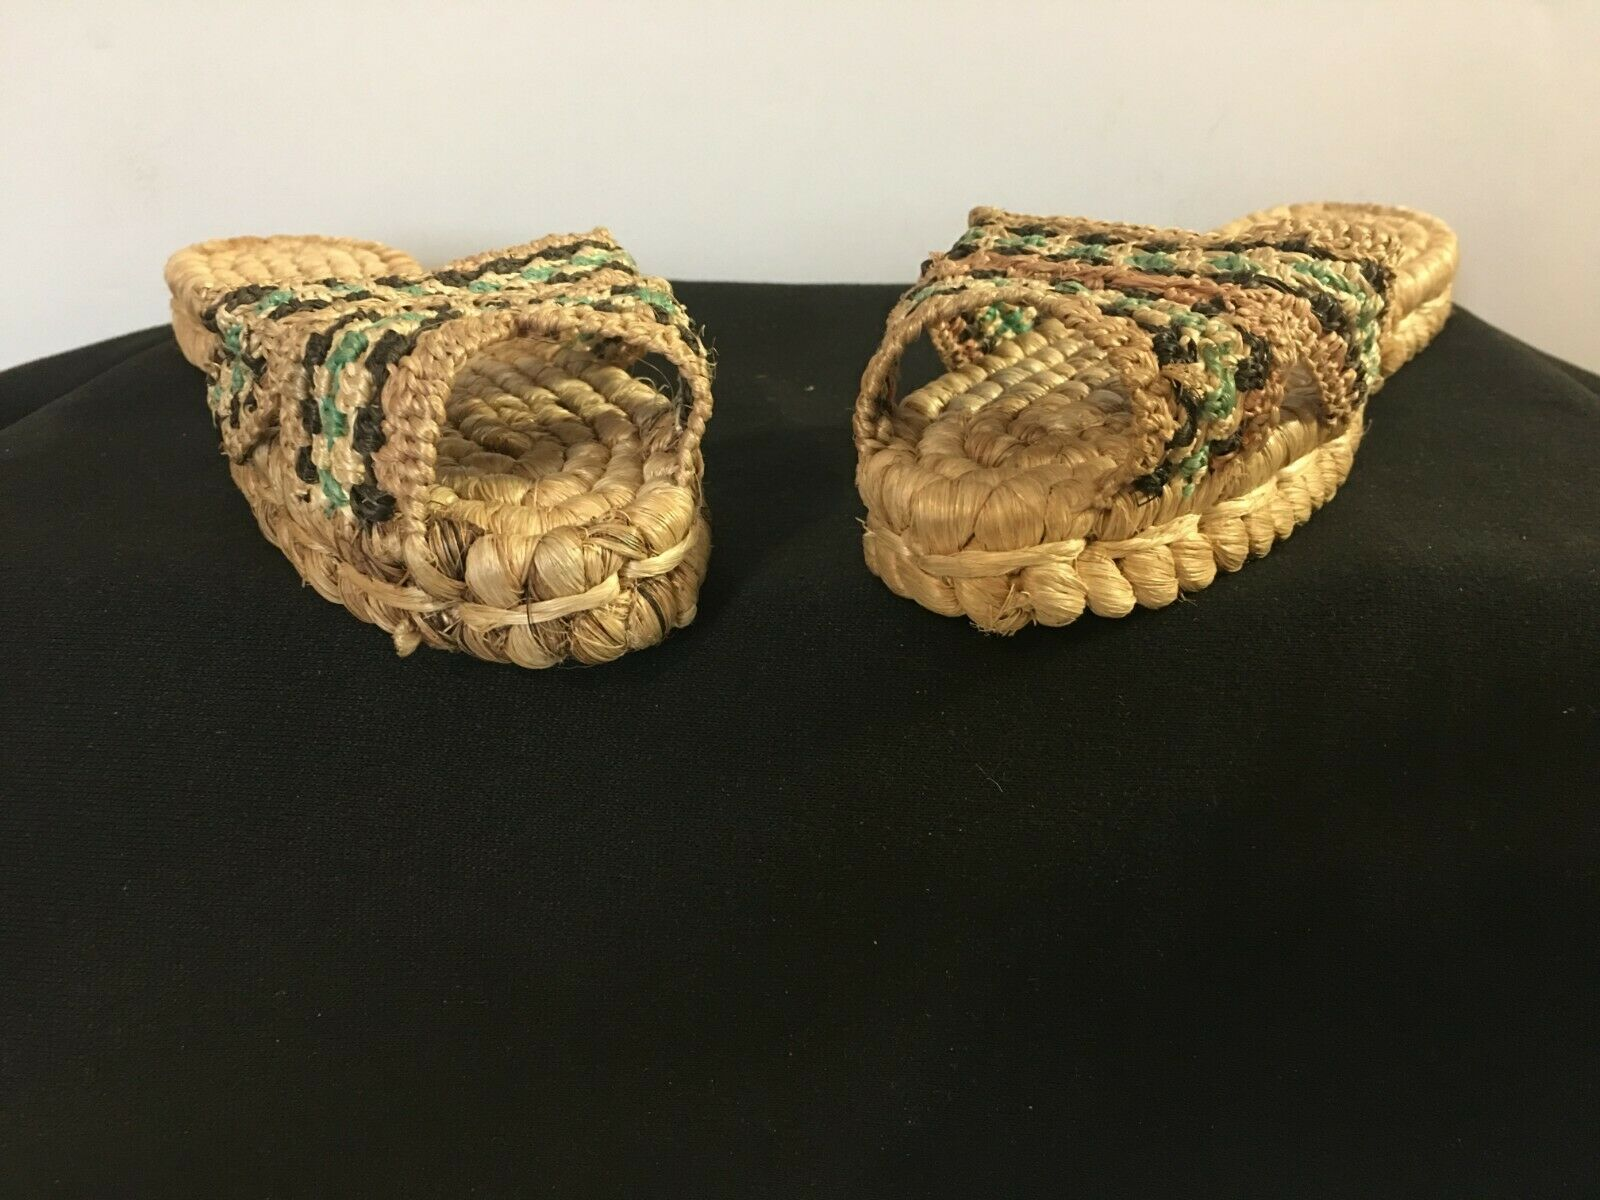 Vintage 1940's Hand Woven Women's Sandals from Ph… - image 3